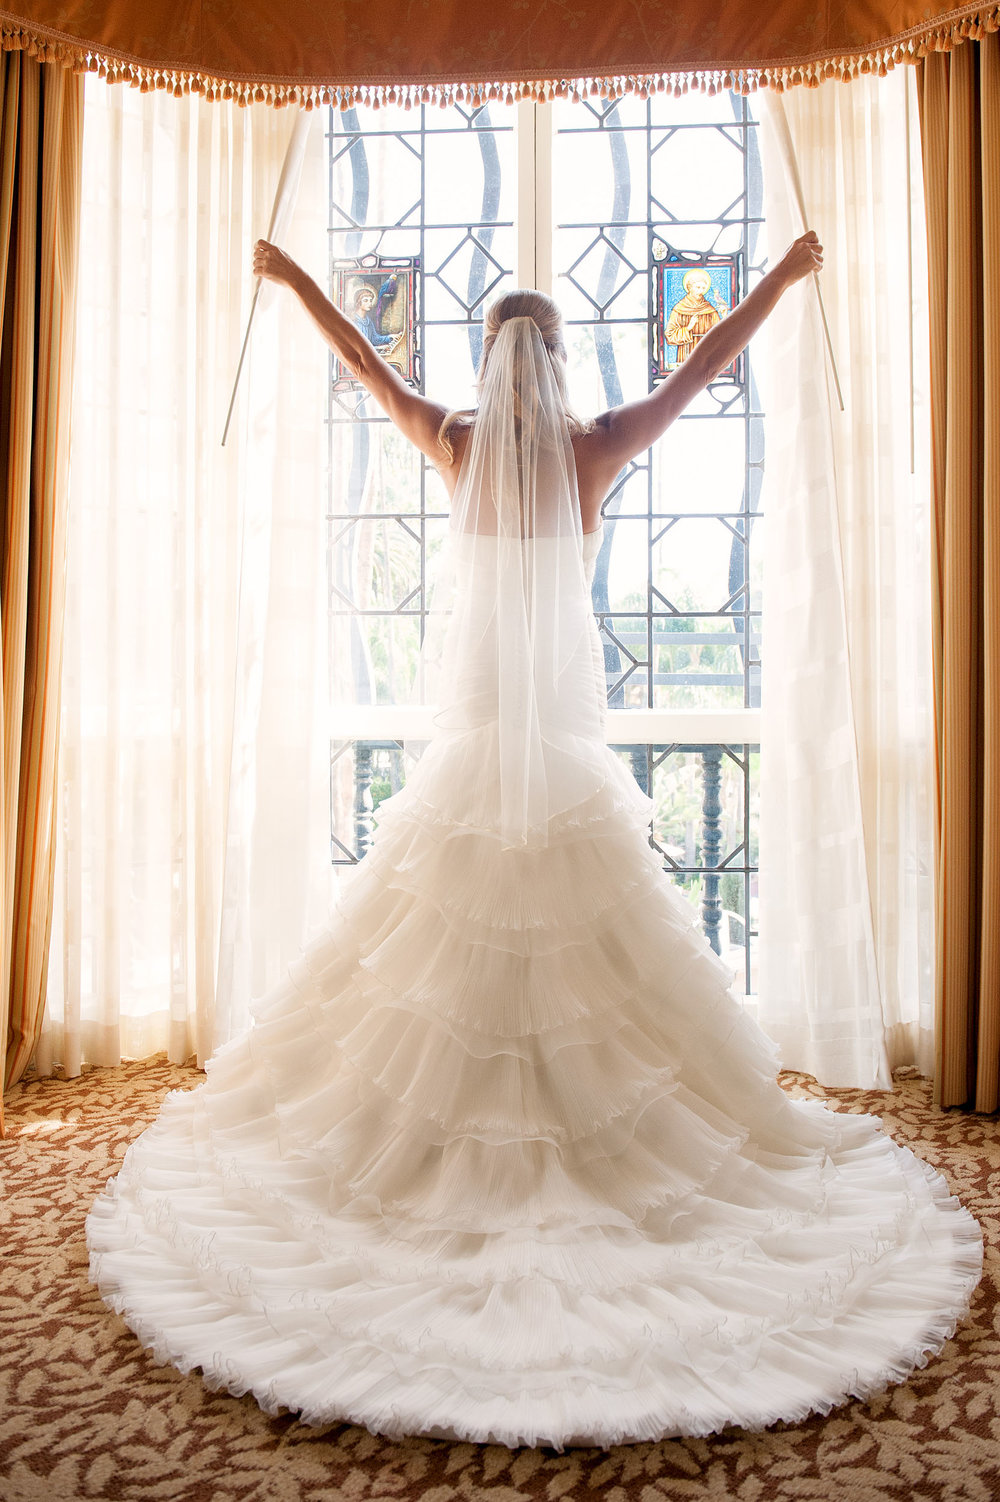 Bride shows off wedding dress train at the Mission Inn Hotel & Spa in Riverside.